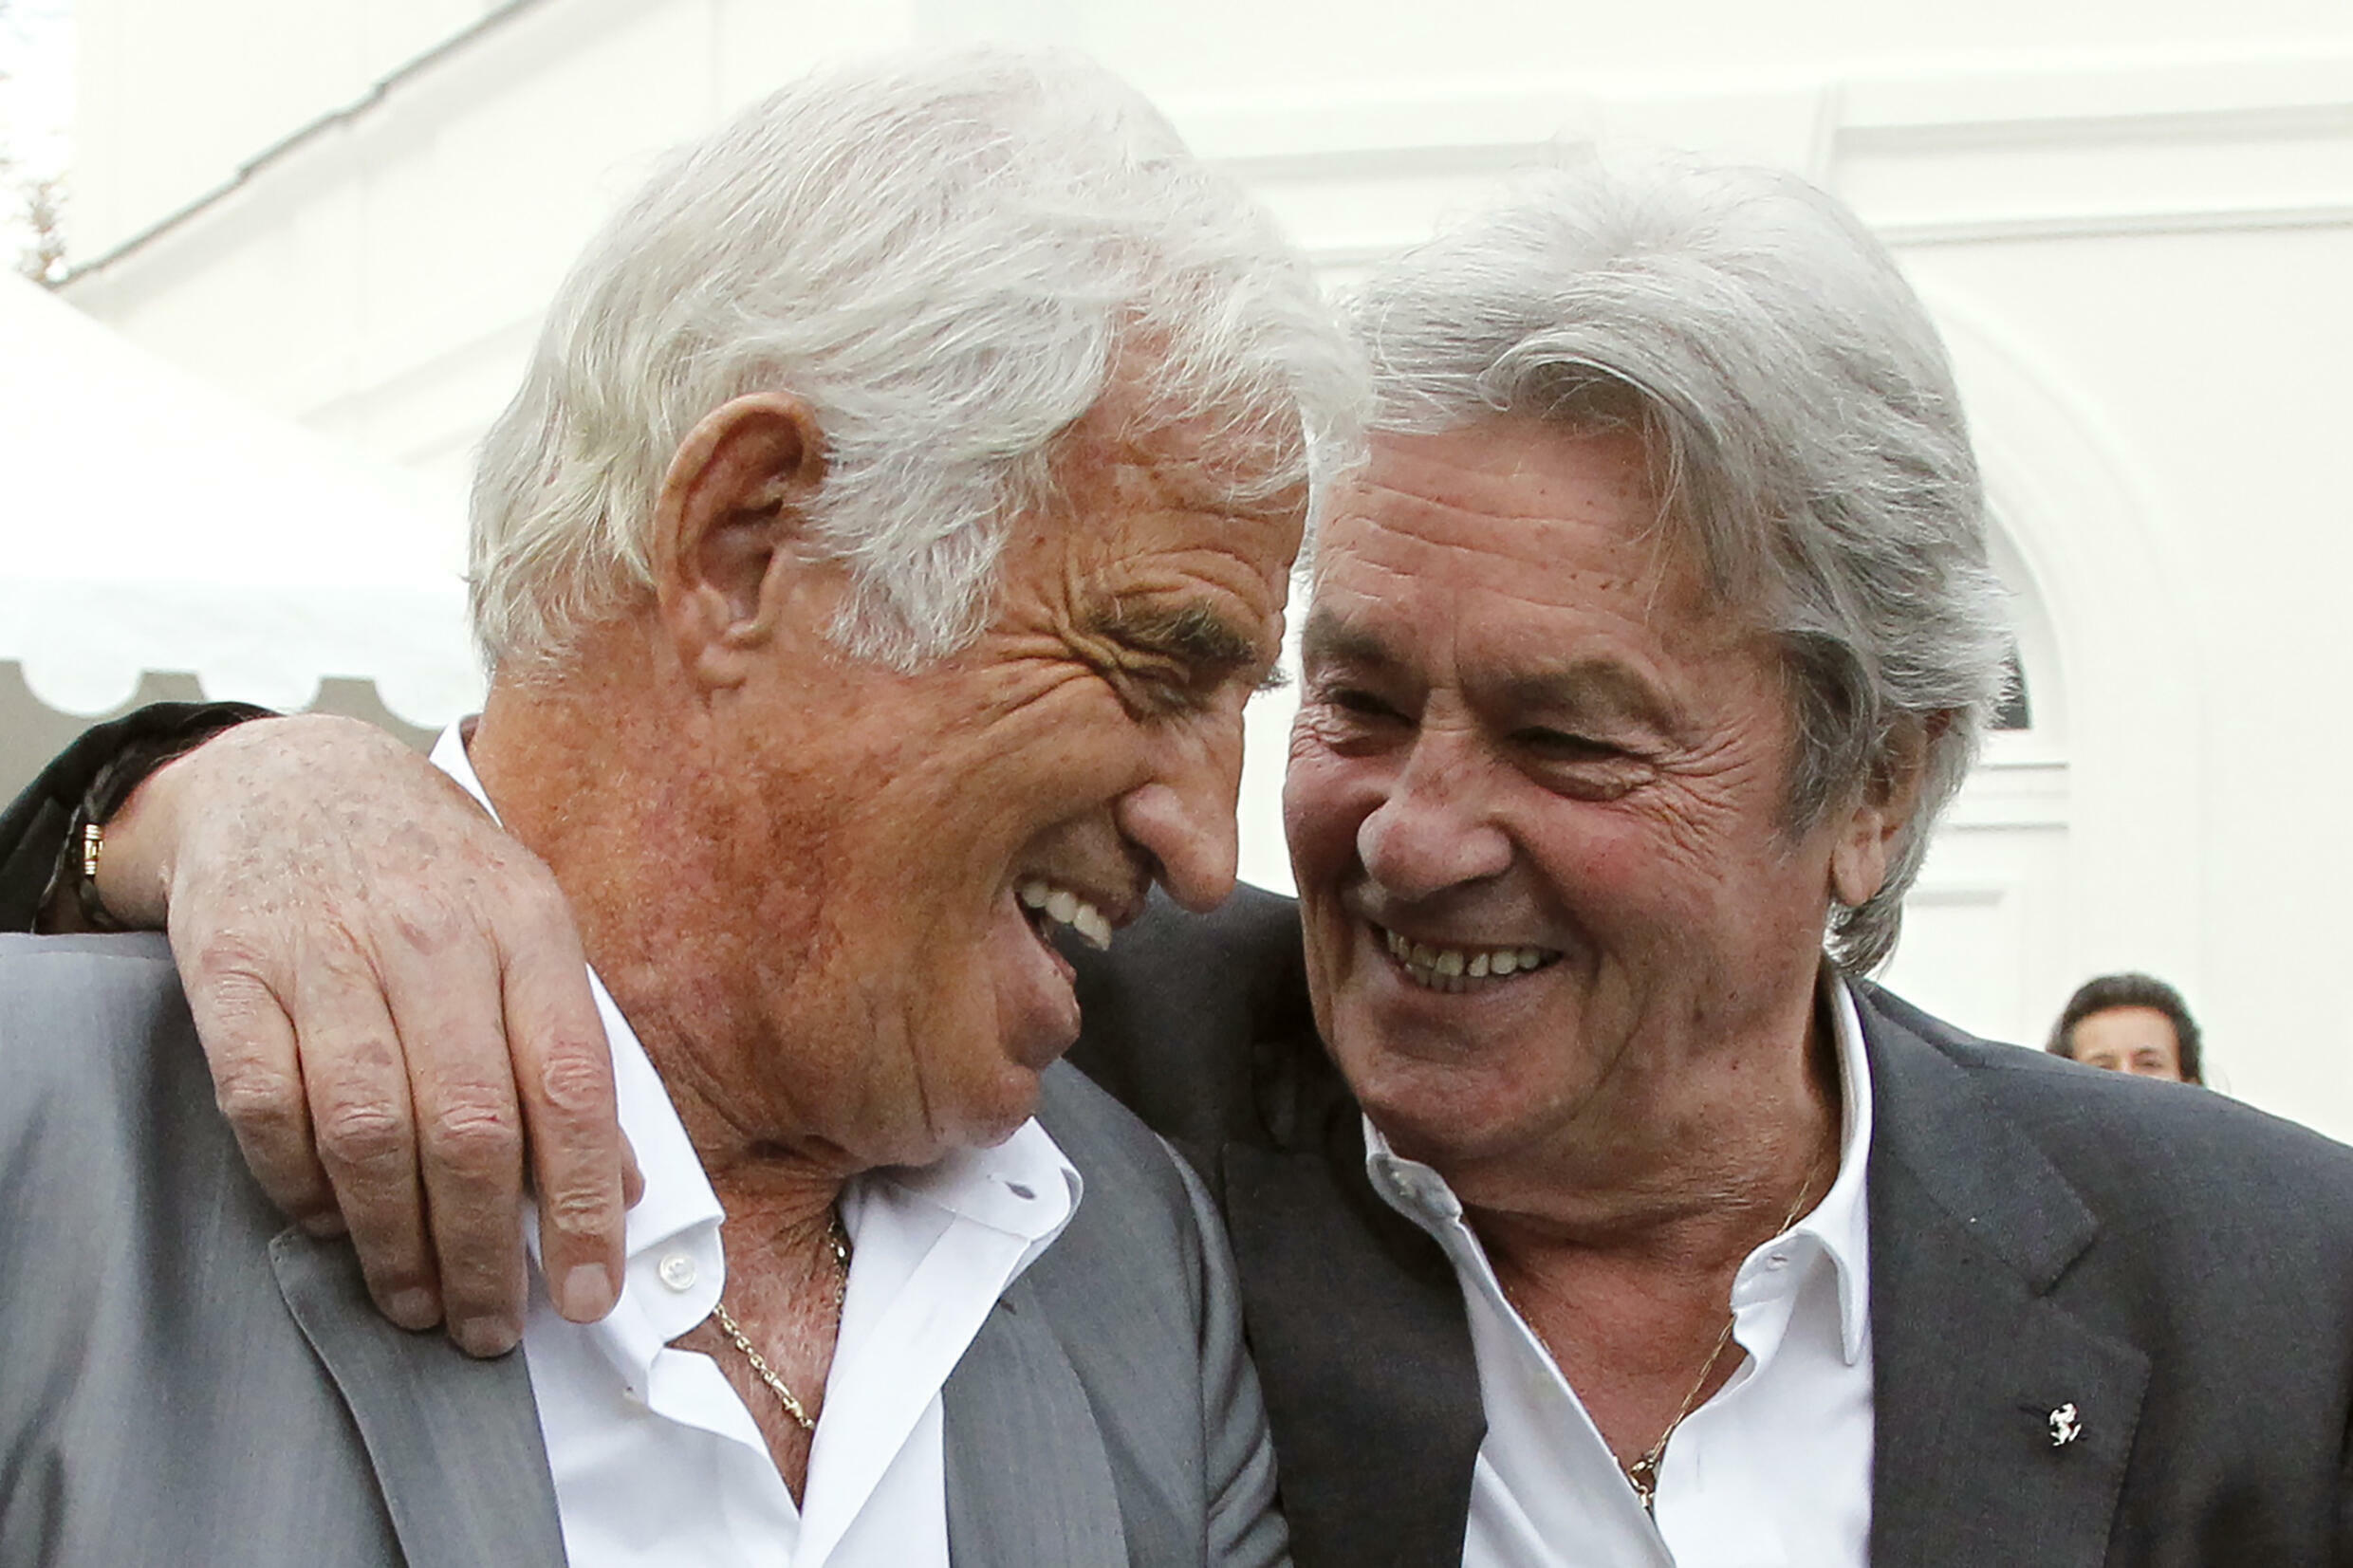 The actors Jean-Paul Belmondo (left) and Alain Delon laugh during the inauguration of the Paul Belmondo museum, dedicated to the father of the first, on September 14, 2010 in Boulogne-Billancourt, in the outskirts of Paris